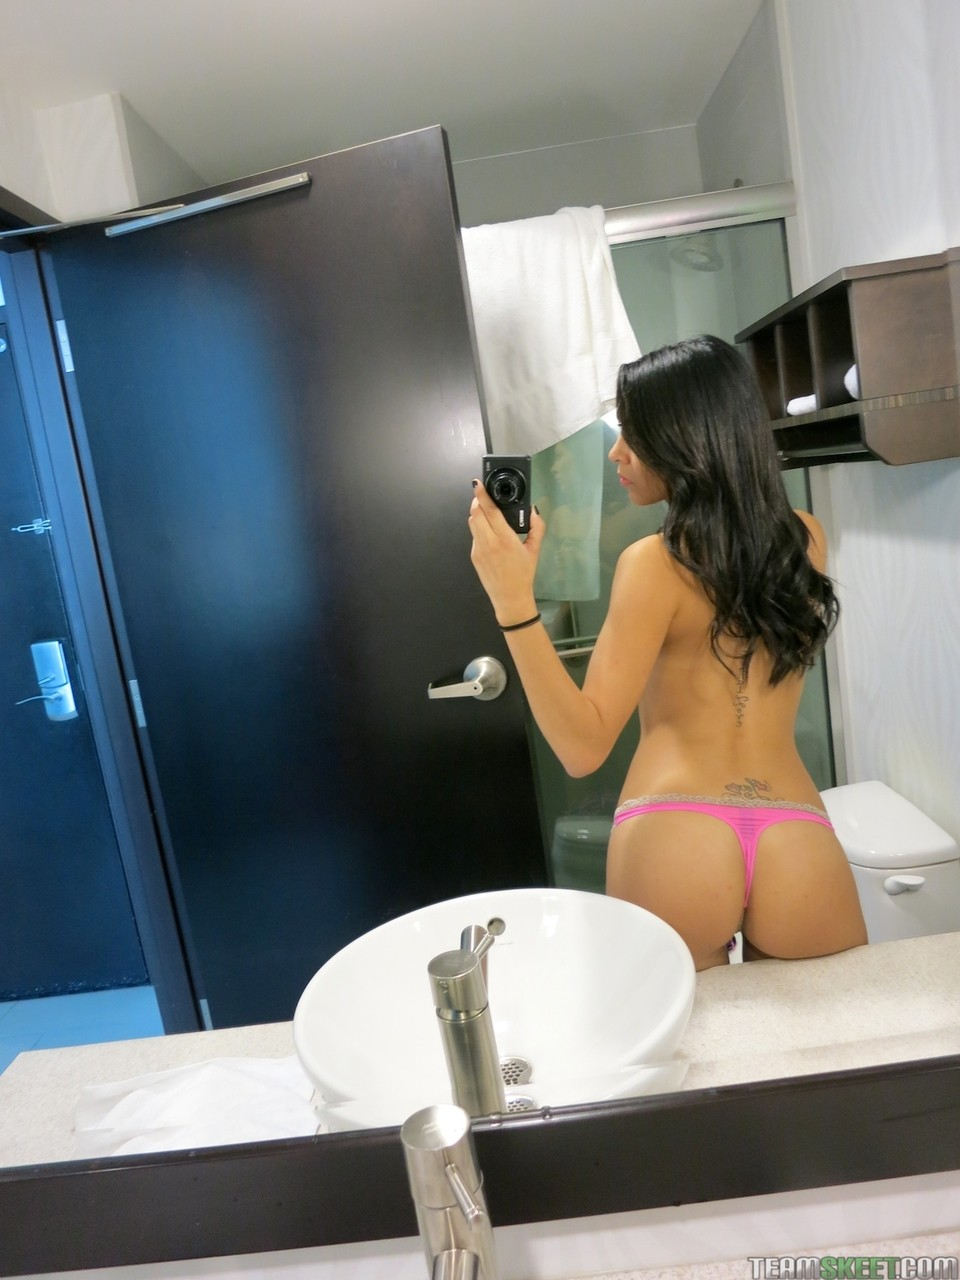 Sexpot Serena Torres copulates with her man on couch and in bathroom